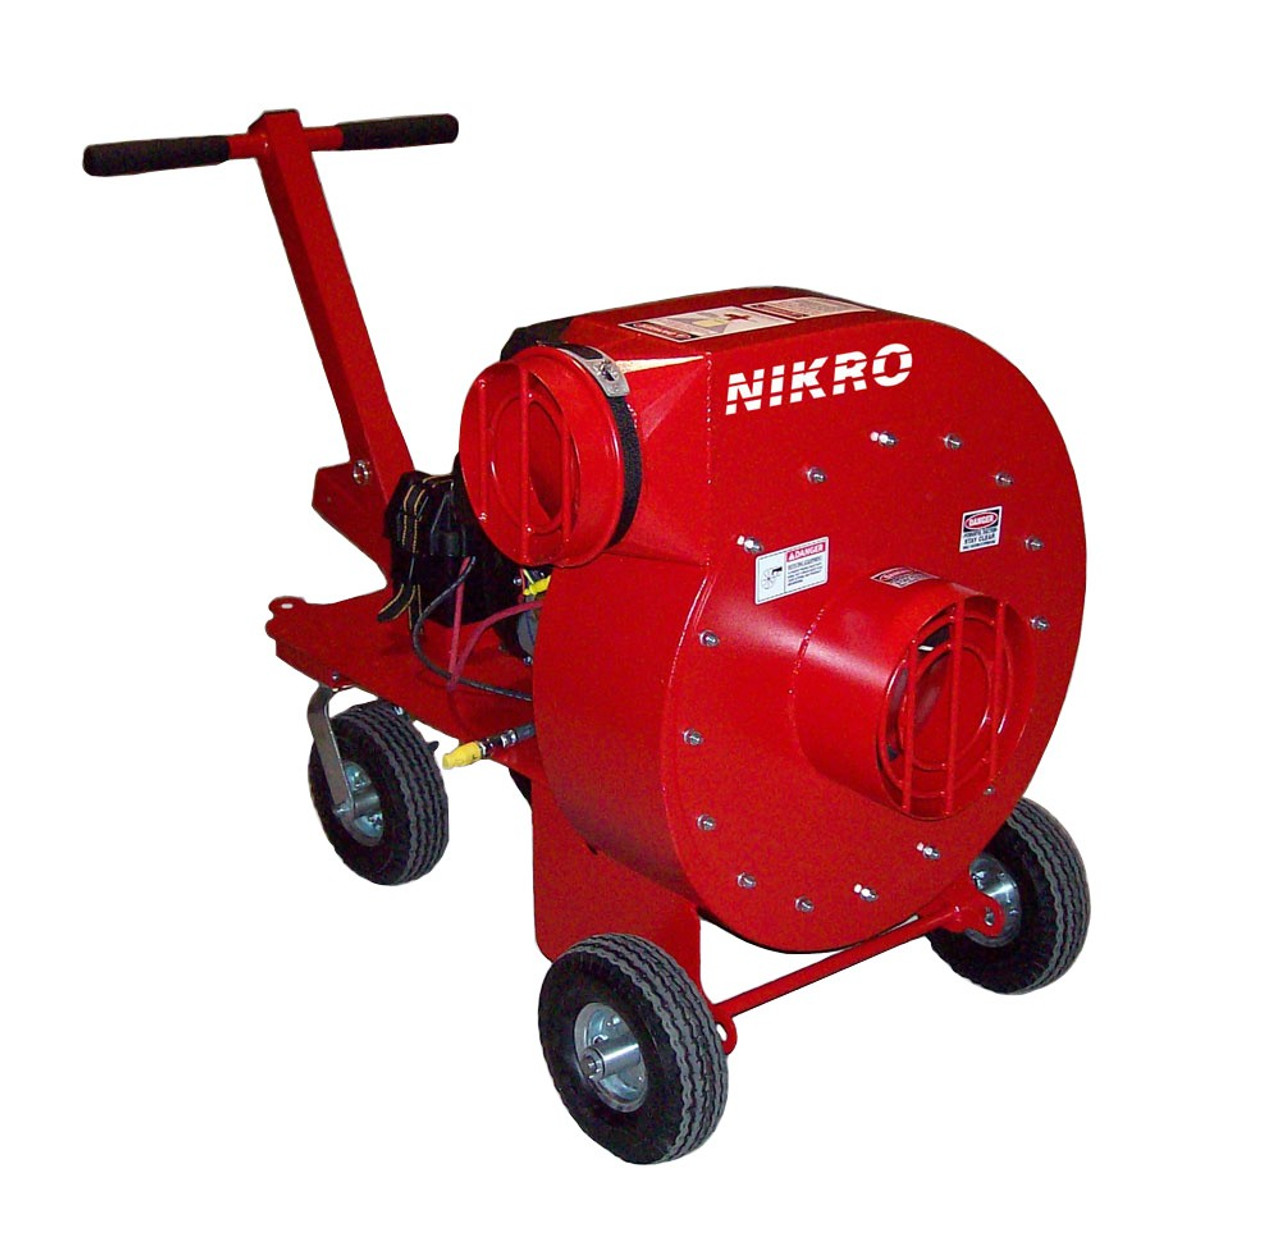 Nikro Hp20gas Portable Gas Powered Air Duct Cleaning System 20 Hp Jendco Safety Supply